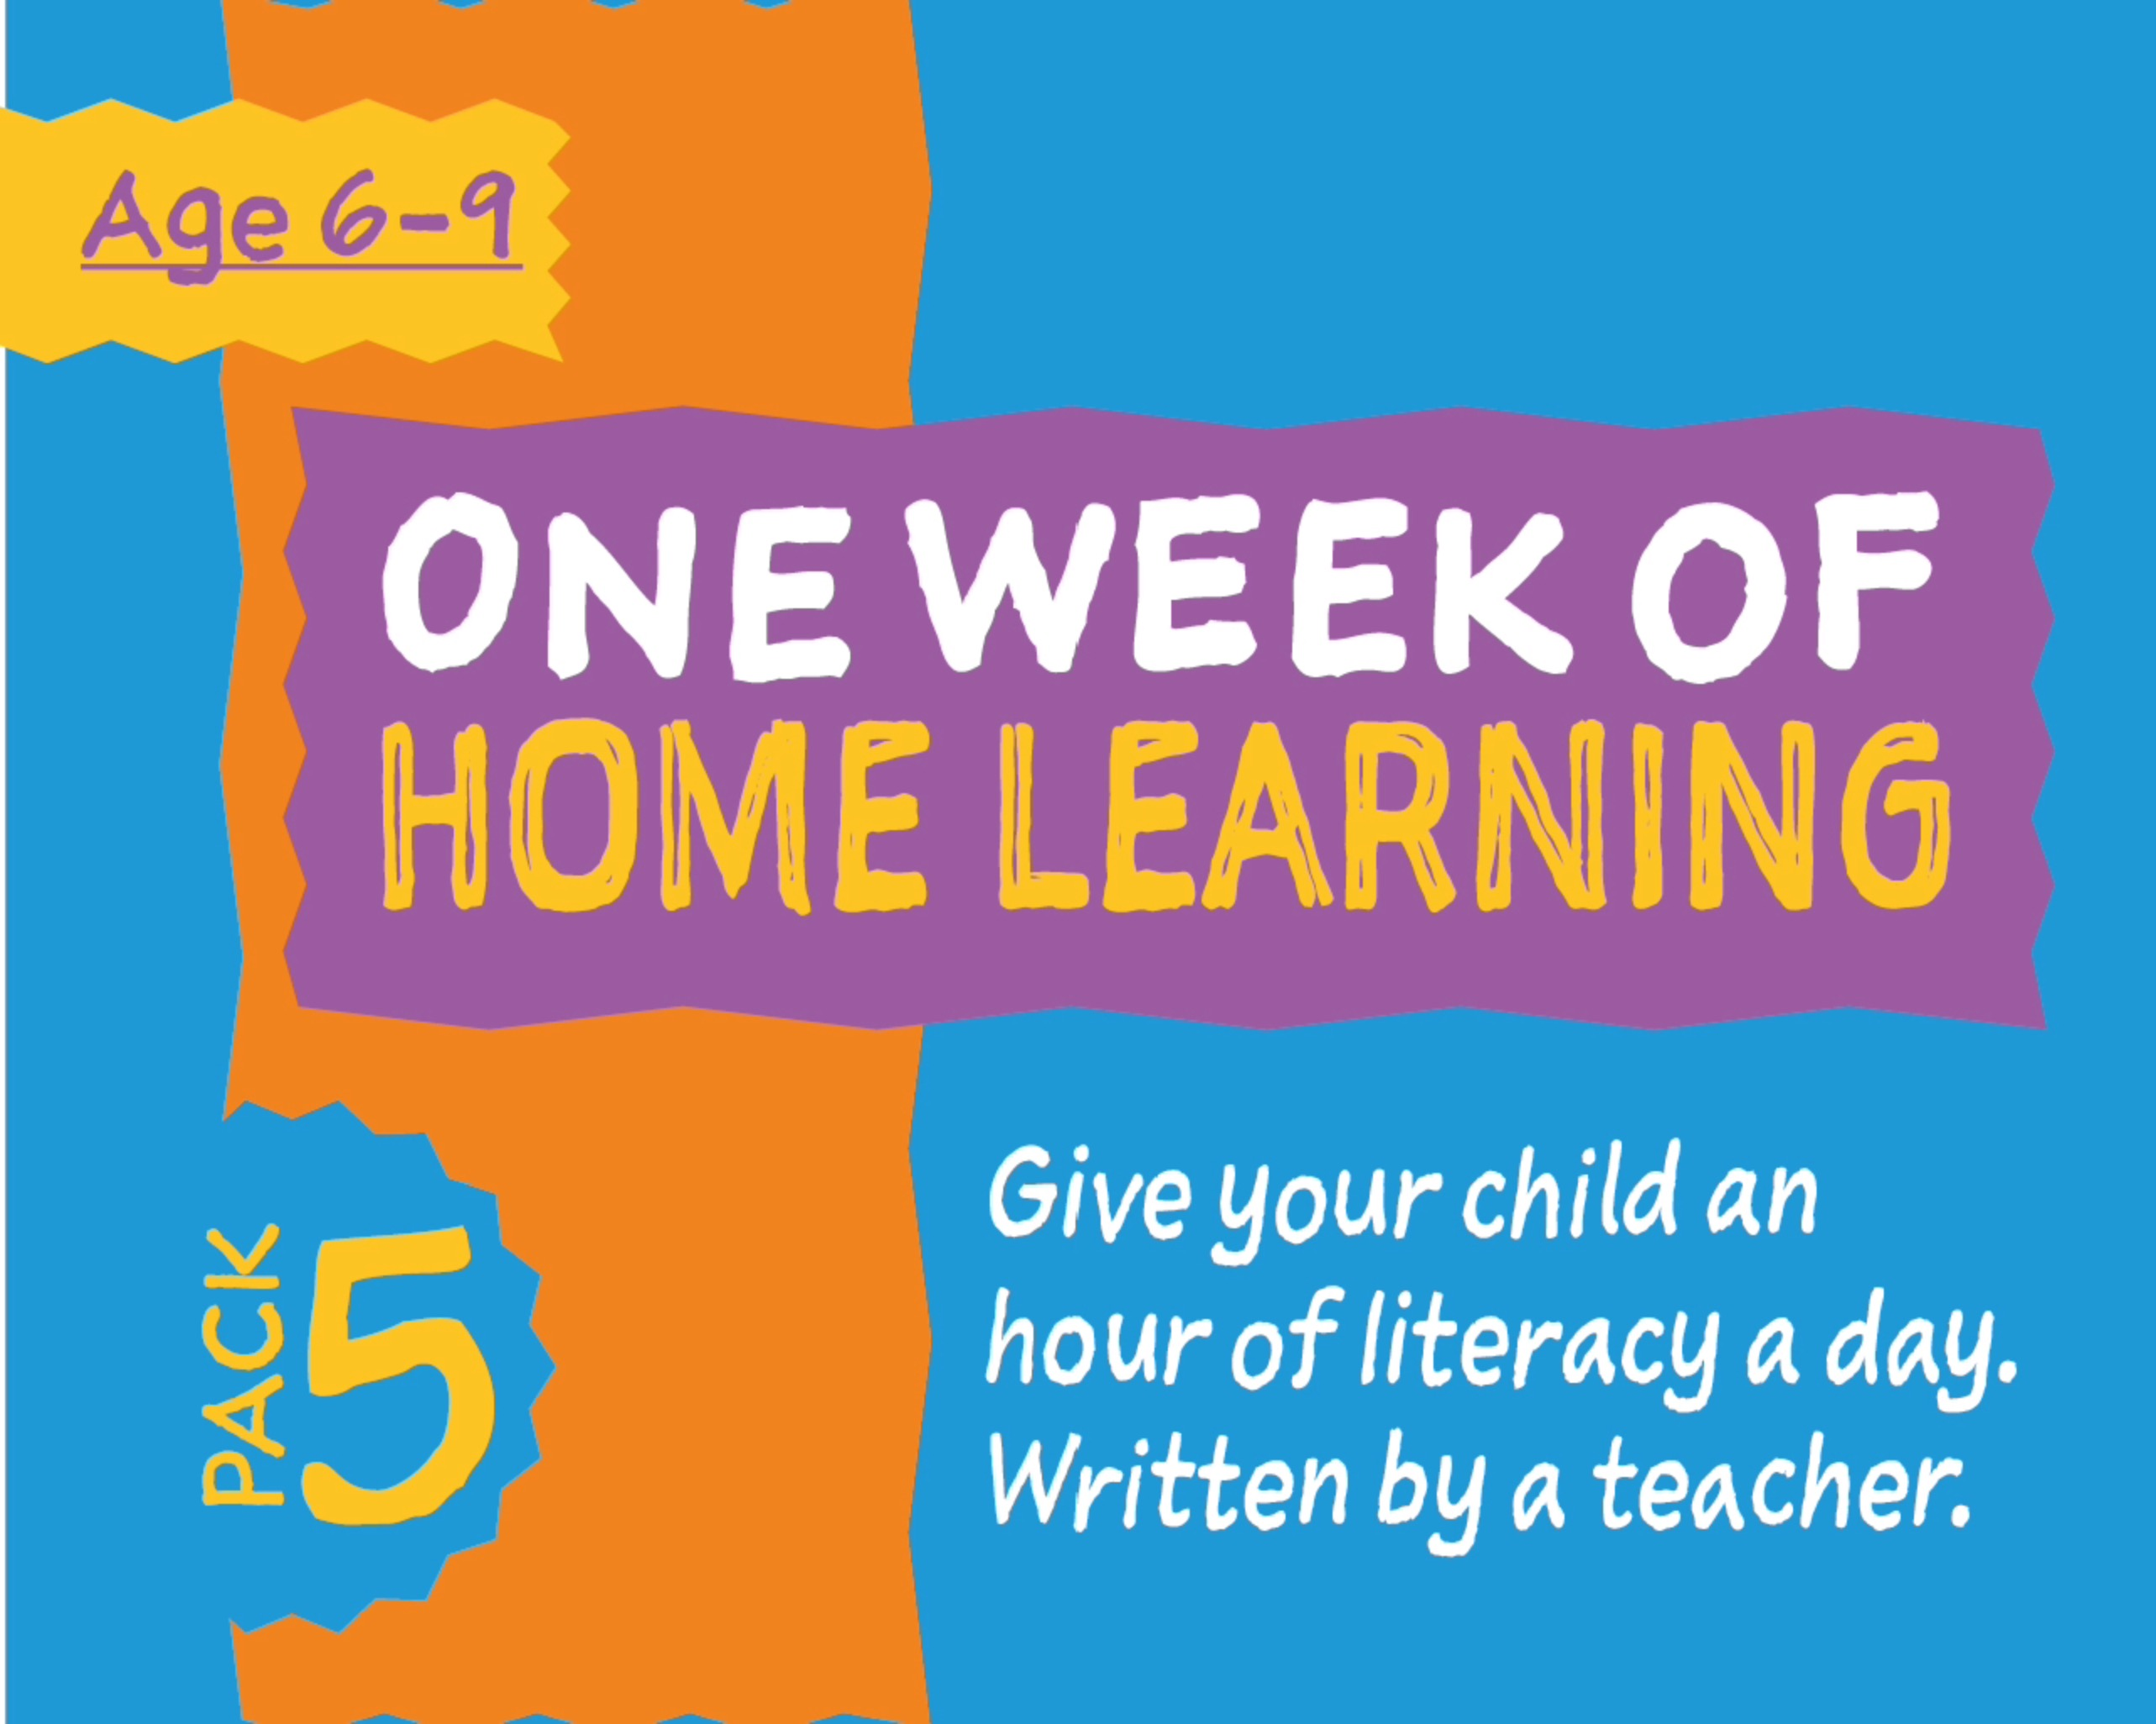 1 Week Literacy Distance Learning: PACK FIVE (age 6-9) Grades 1-3